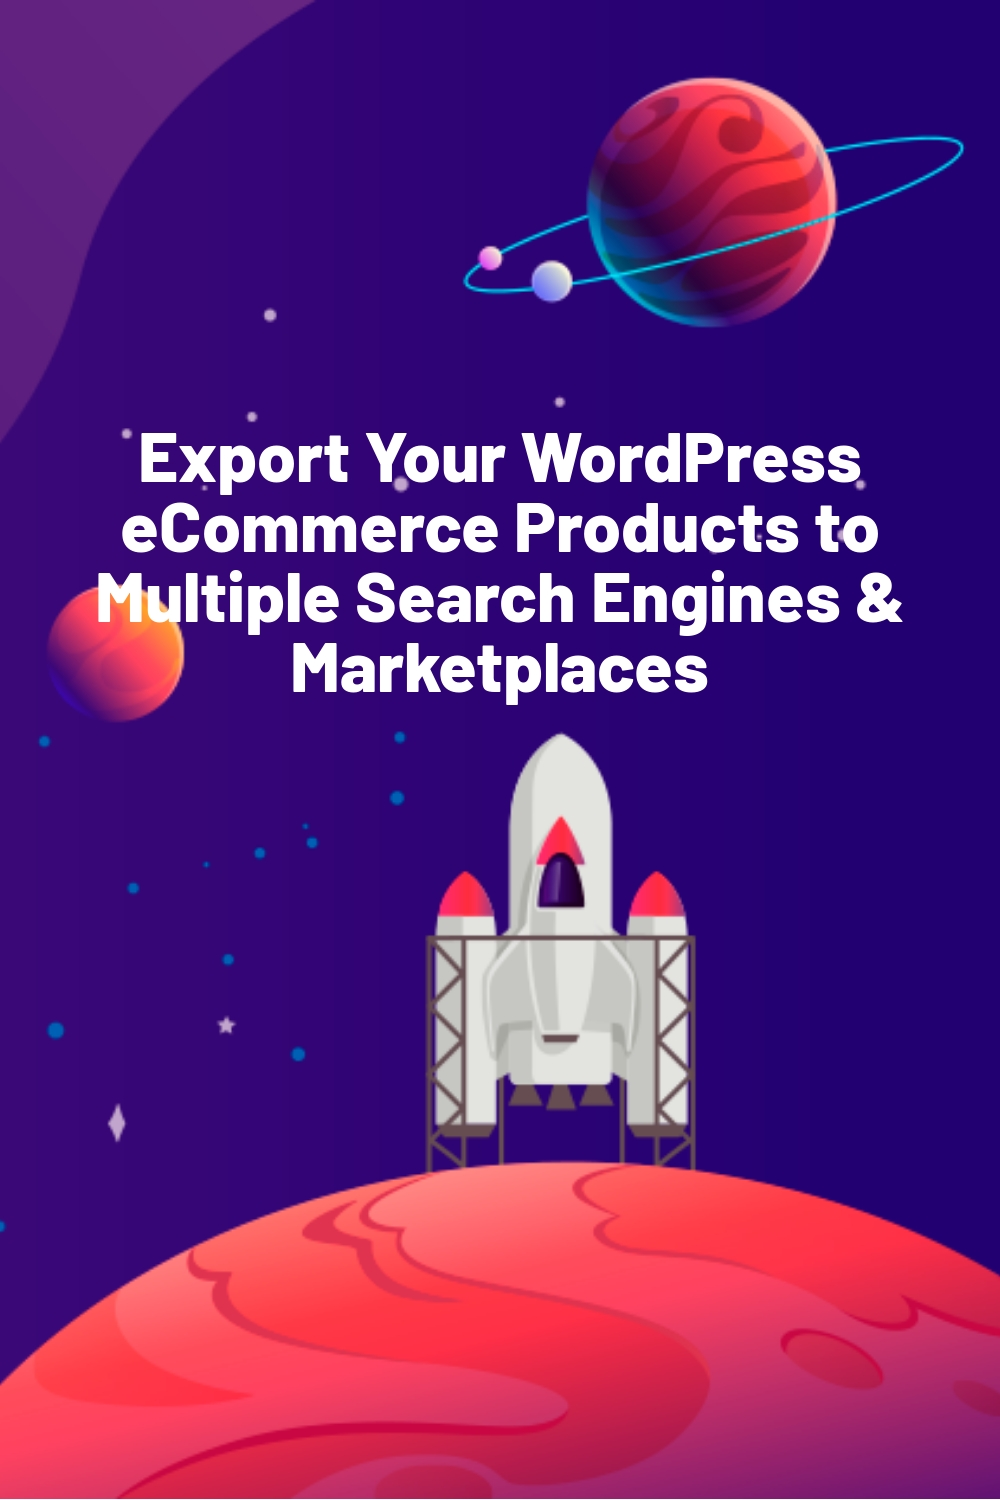 Export Your WordPress eCommerce Products to Multiple Search Engines & Marketplaces